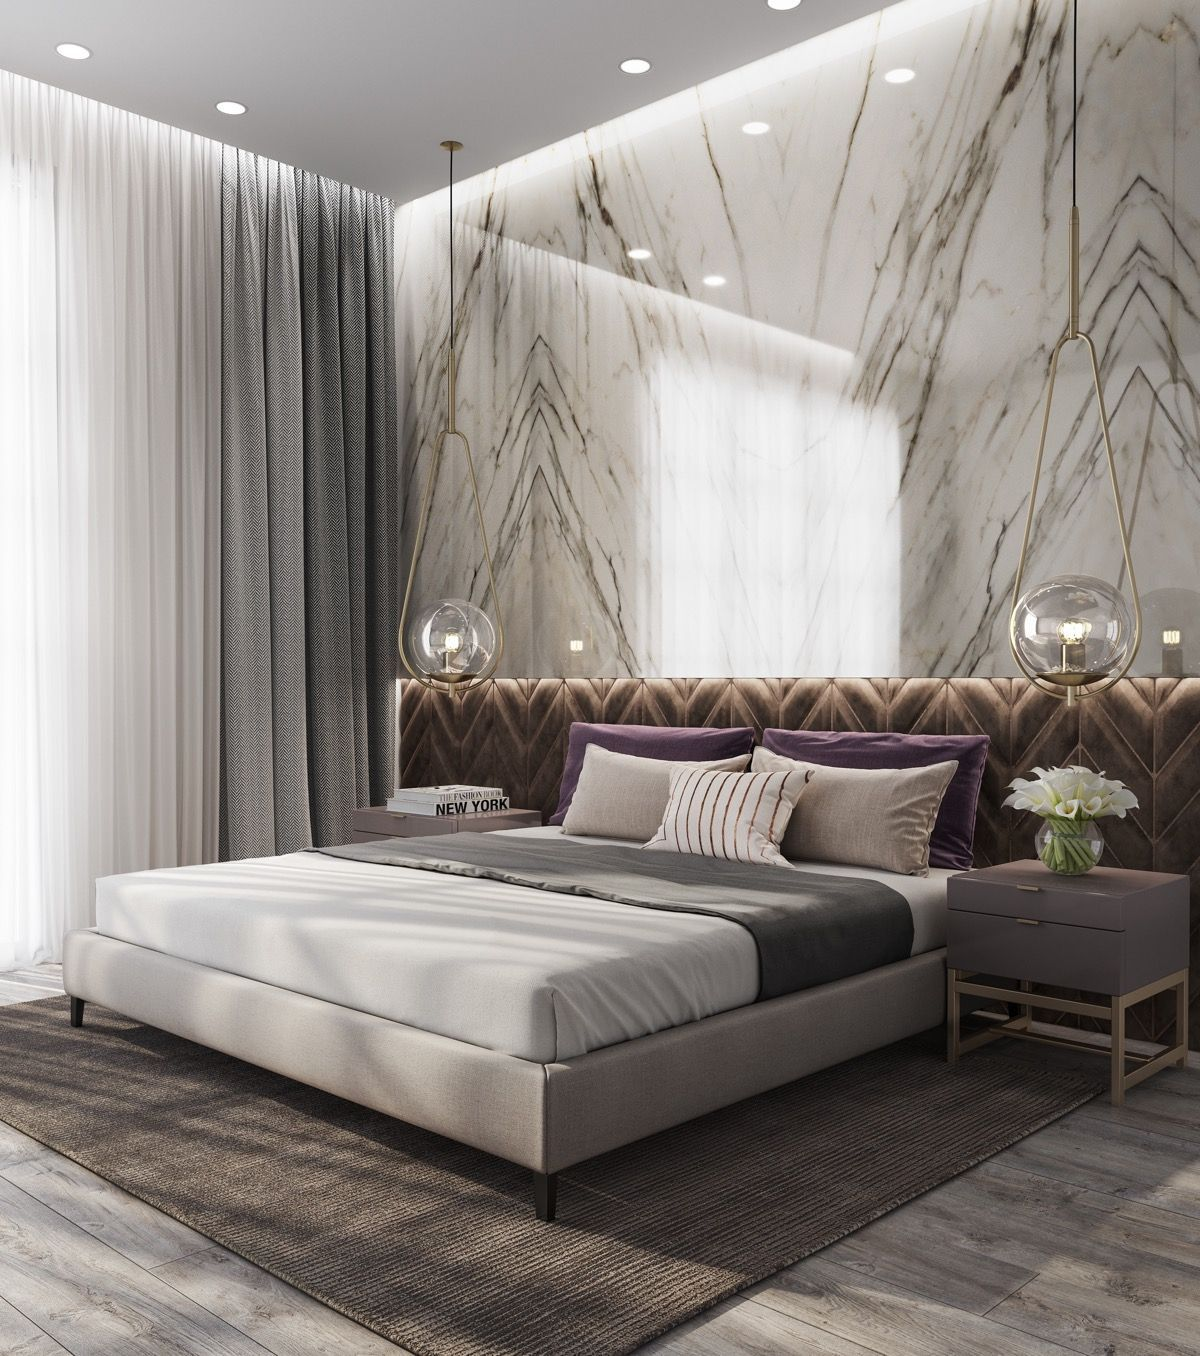 Luxury Home Interiors And Design Ideas From The Best In Luxury Condos Penthouses And Architectu Luxurious Bedrooms Modern Luxury Bedroom Modern Bedroom Design